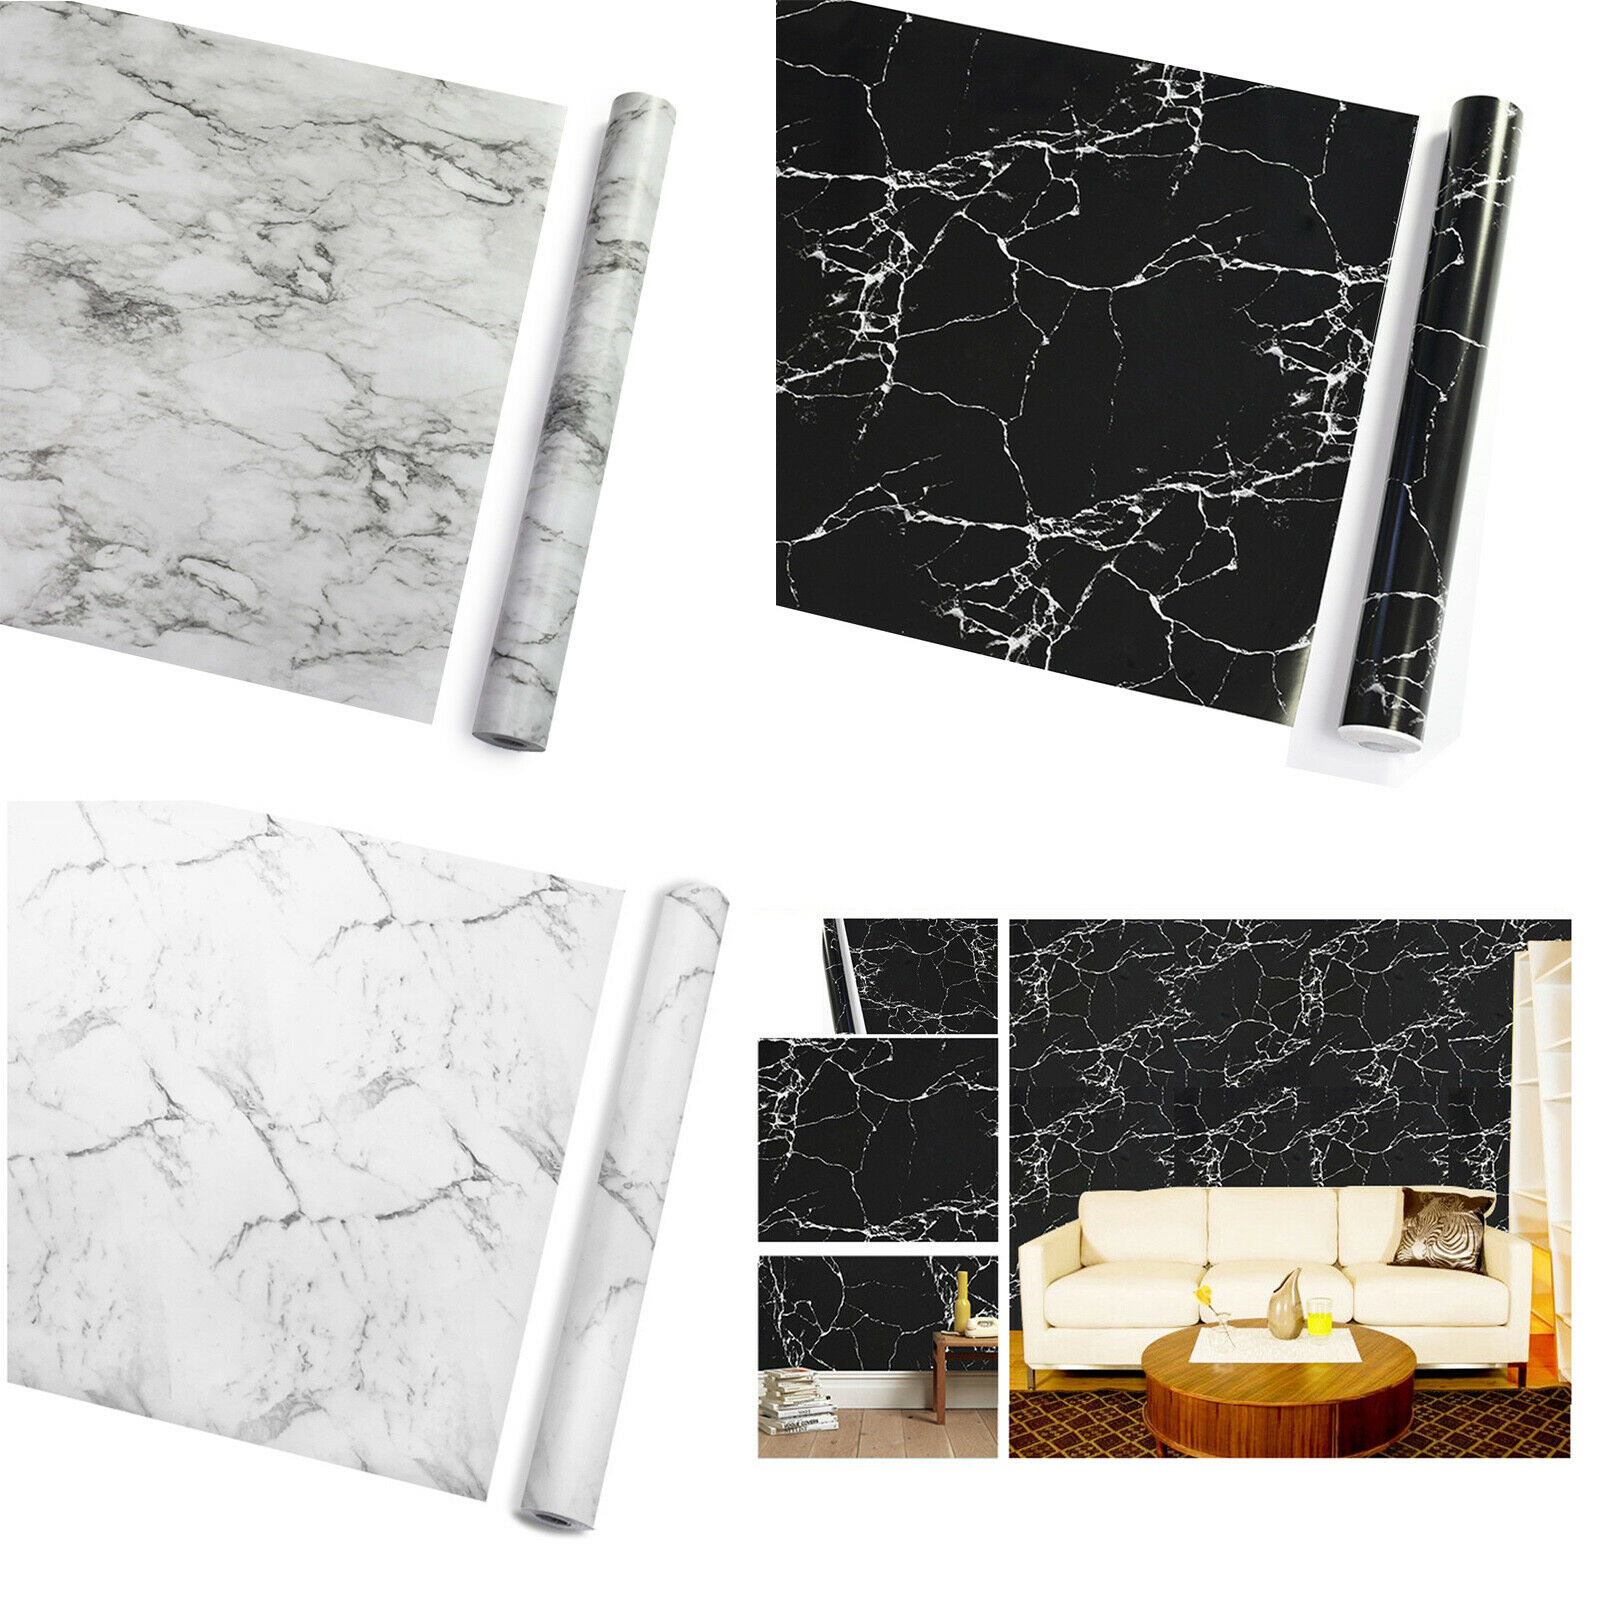 Worktop Vinyl Film White Self Adhesive Roll Sheet Marble Effect Kitchen Bathroom For Sale Ebay